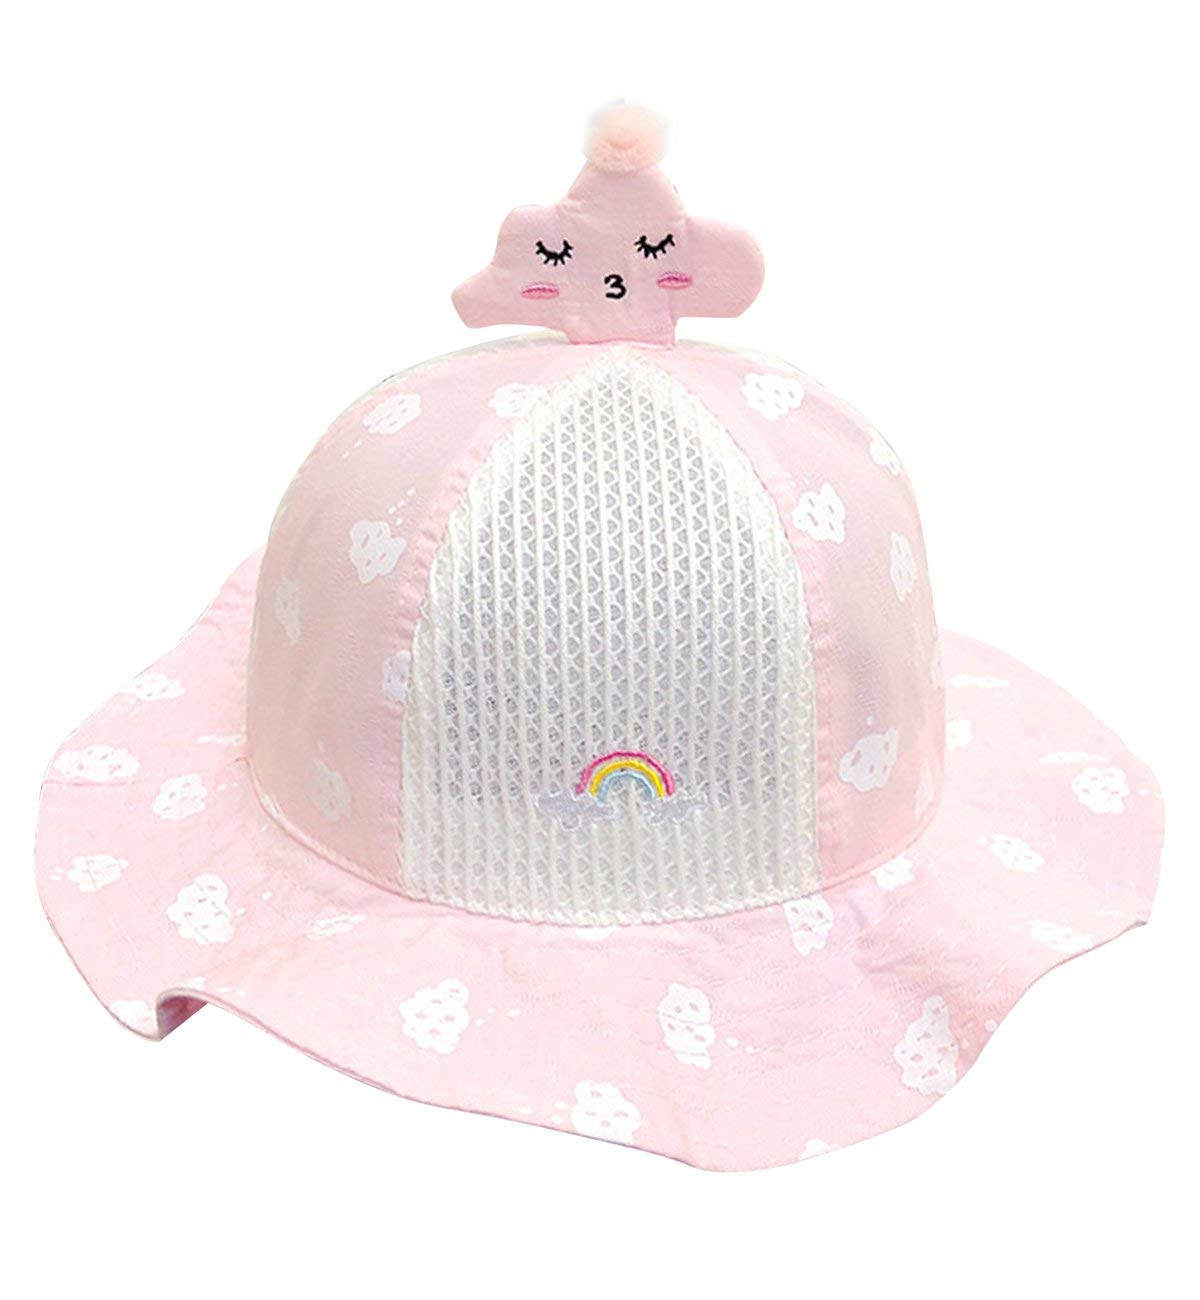 Get Quotations · Sumolux Toddlers Baby Sun Hat Cute Girls Boys Clouds Mesh  Large Brimmed Cotton Sun Protection Floppy 8991832fbd58